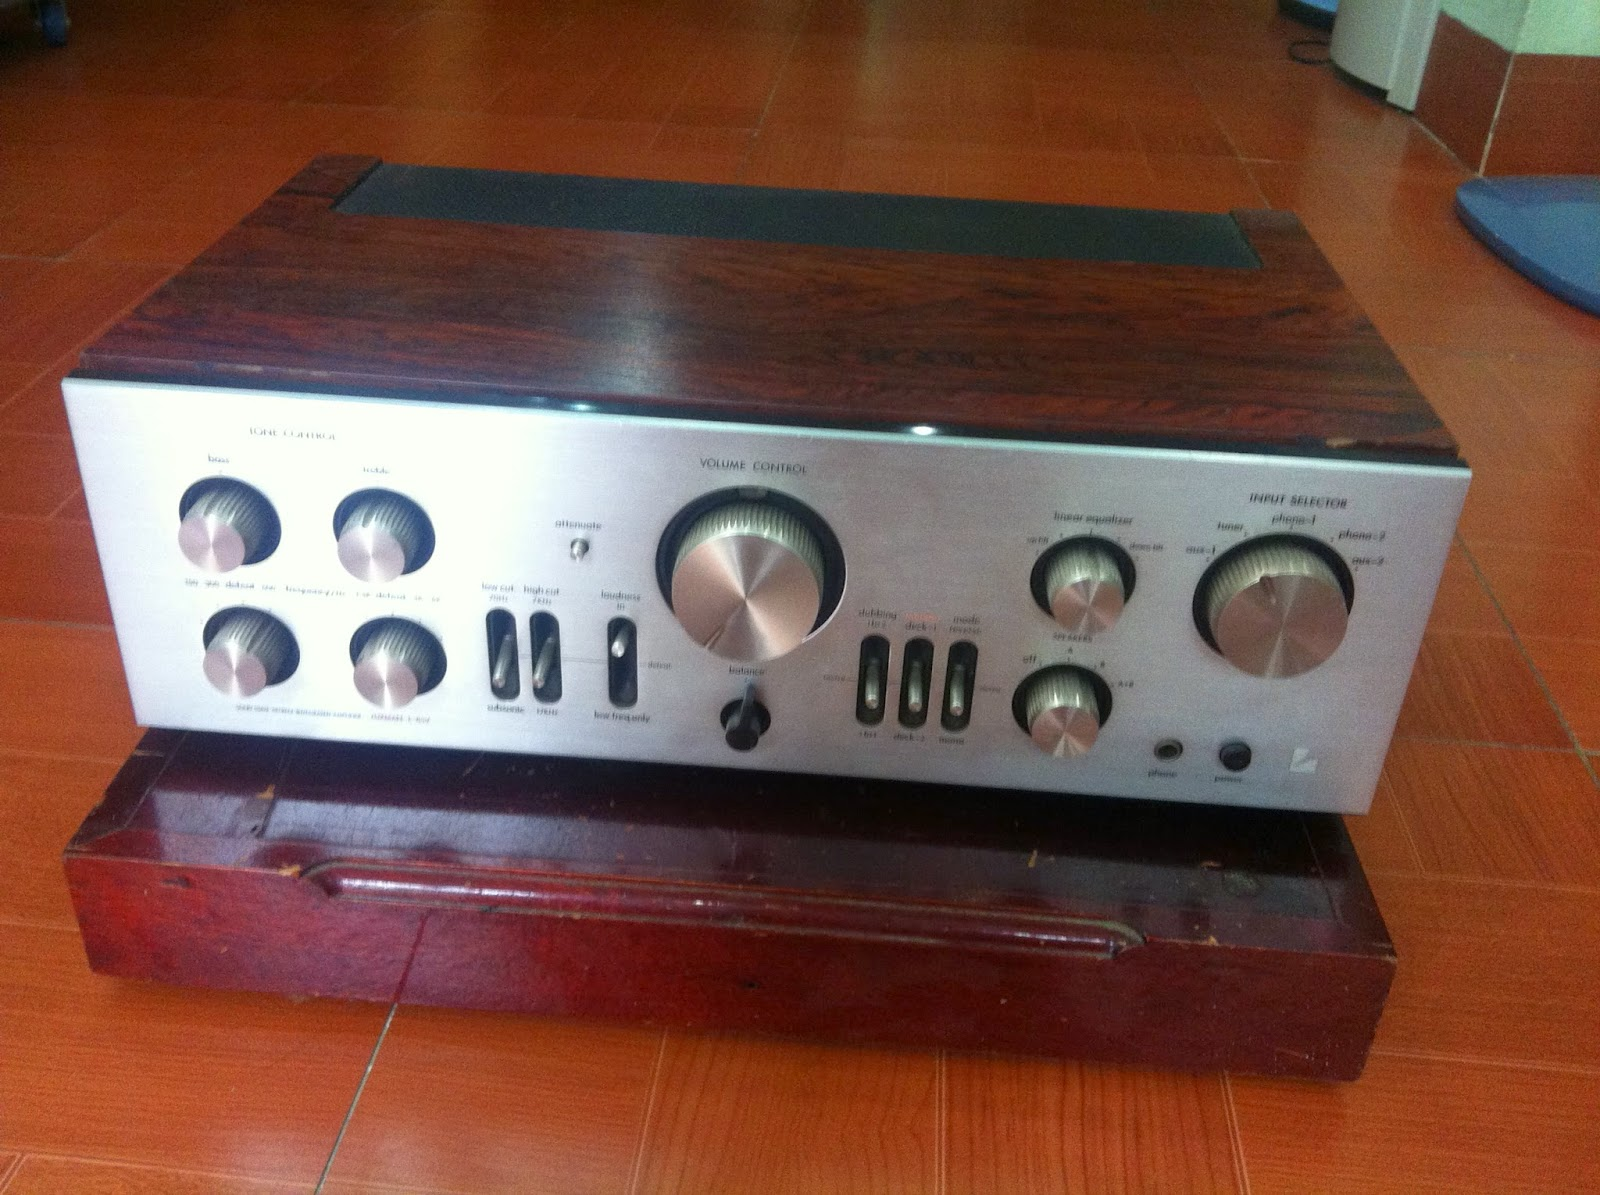 Amply Luxman - L85V, made in Japan